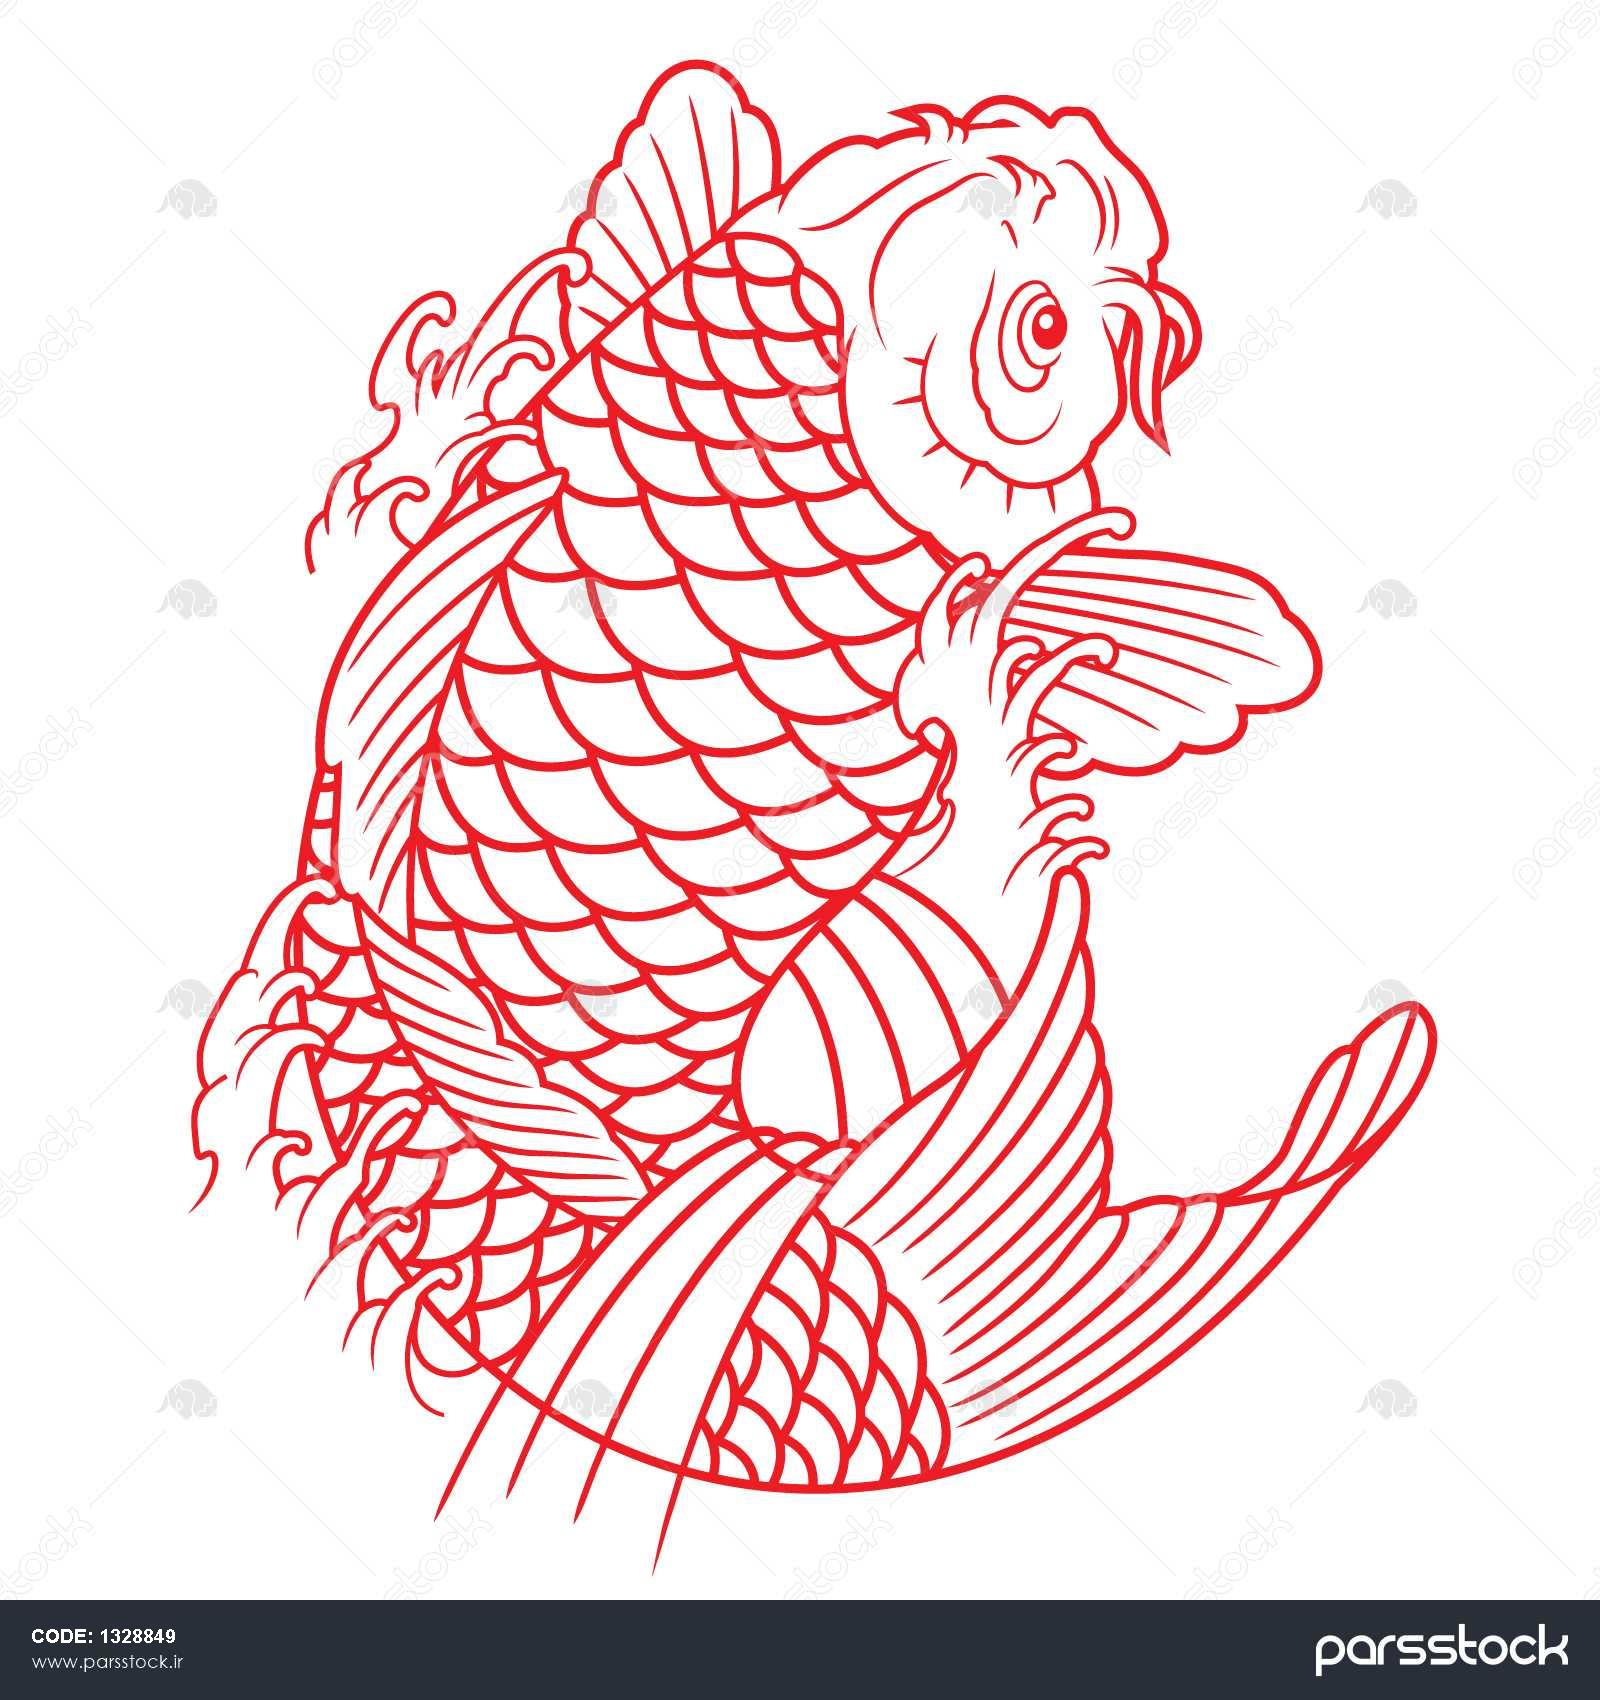 outline drawings of fish